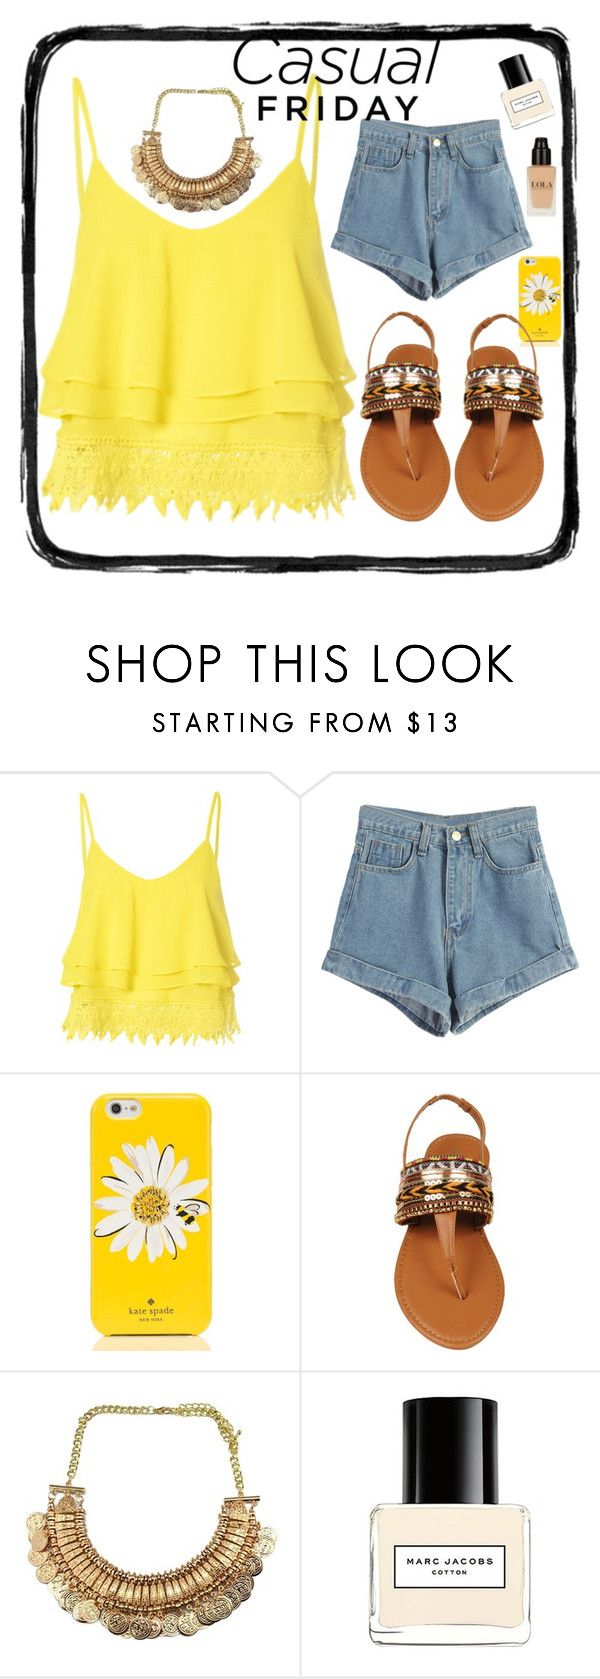 """casual friday 2"" by camilazeballo on Polyvore featuring moda, Glamorous, WithChic, Kate Spade, Black Rivet y Marc Jacobs"